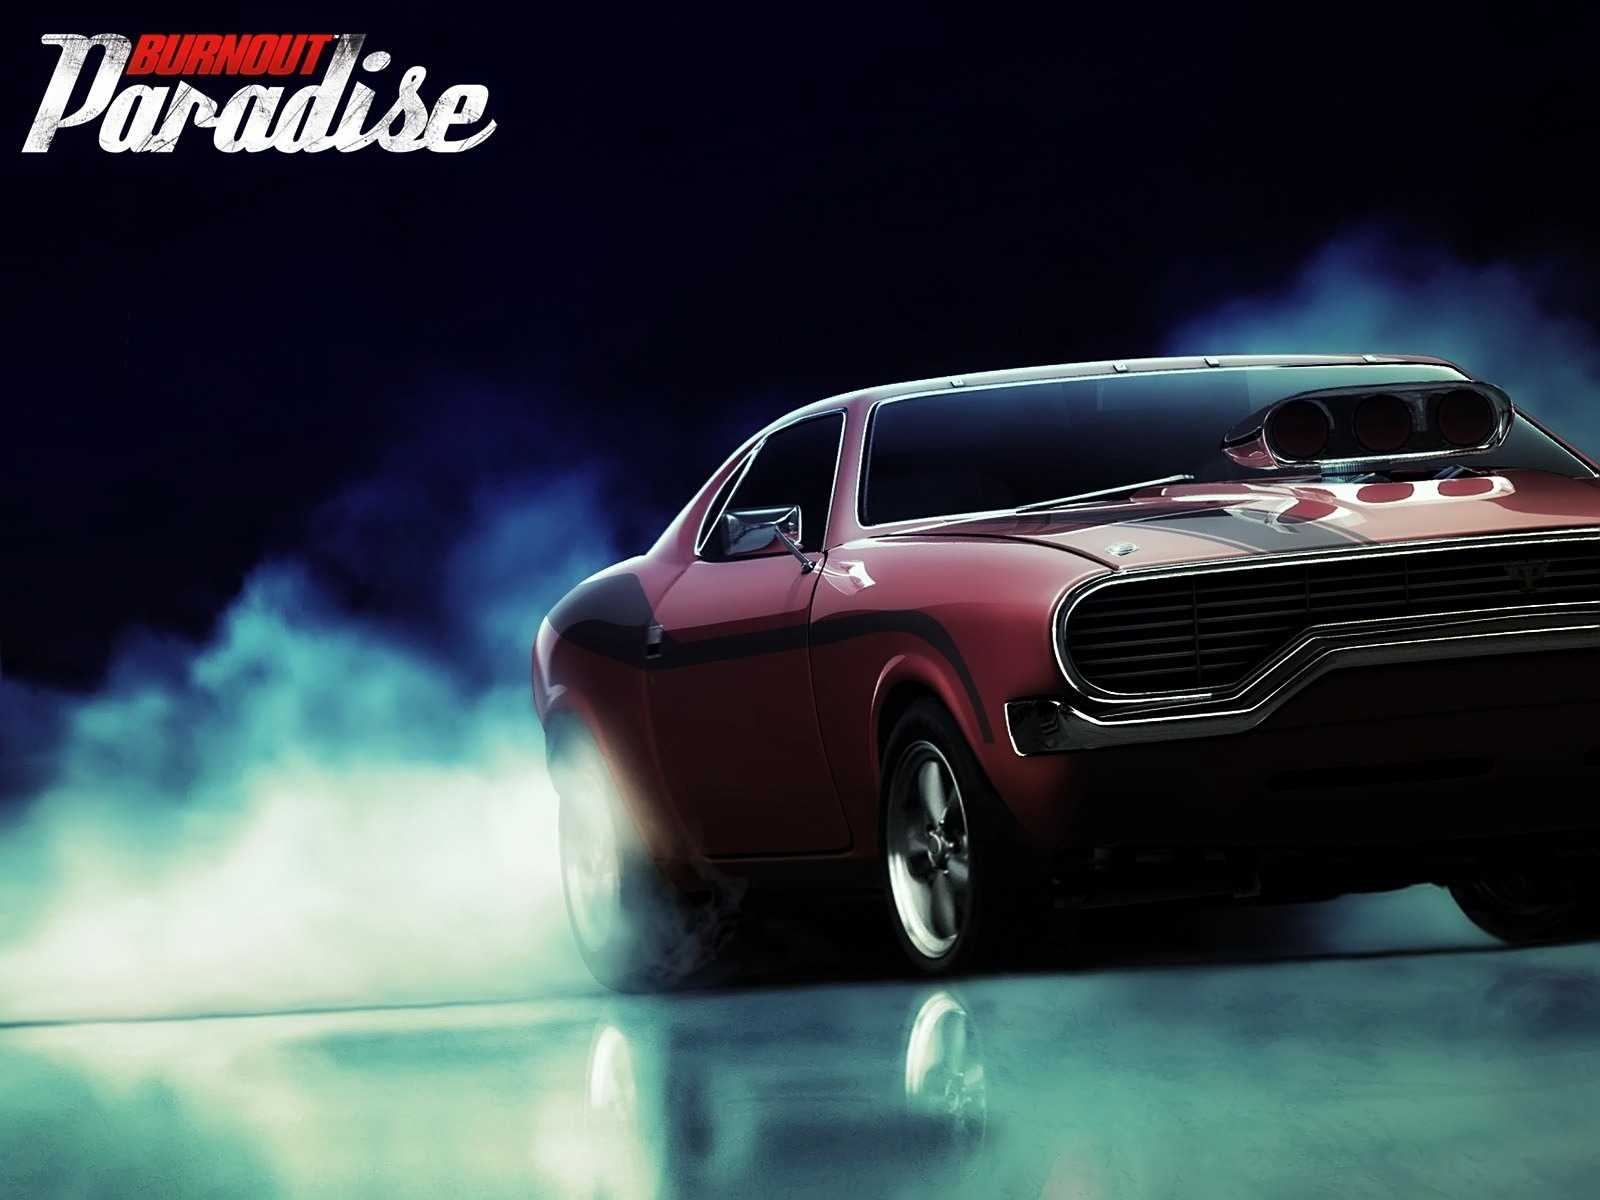 Burnout Paradise HD Wallpapers